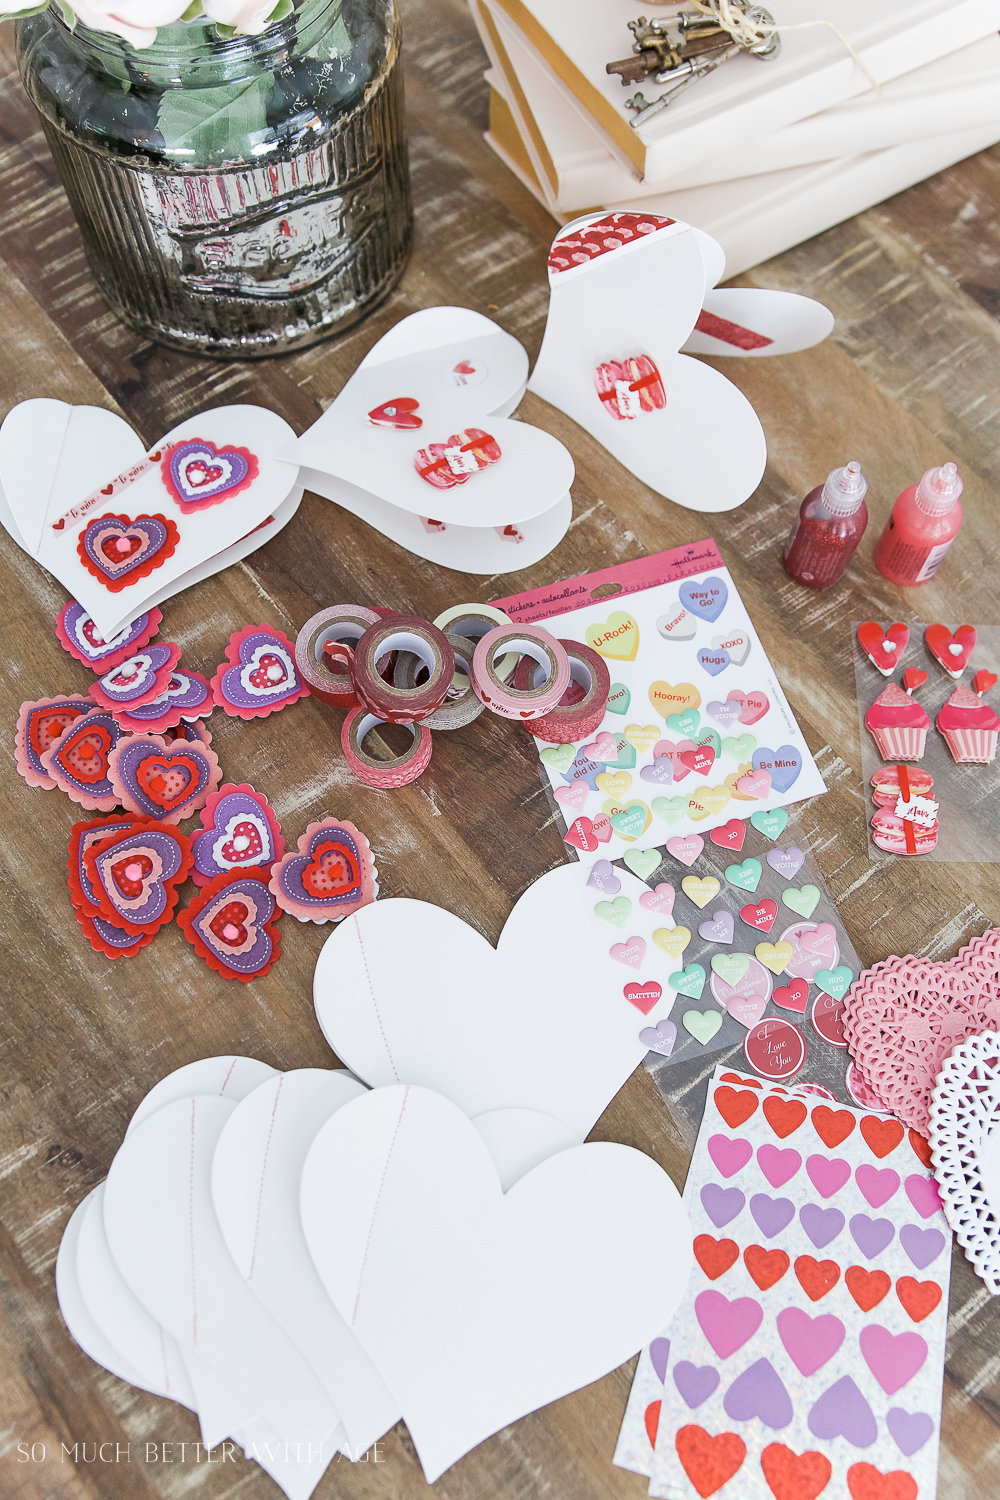 DIY stitched Valentine's Day cards / supplies on table to make the cards - So Much Better With Age